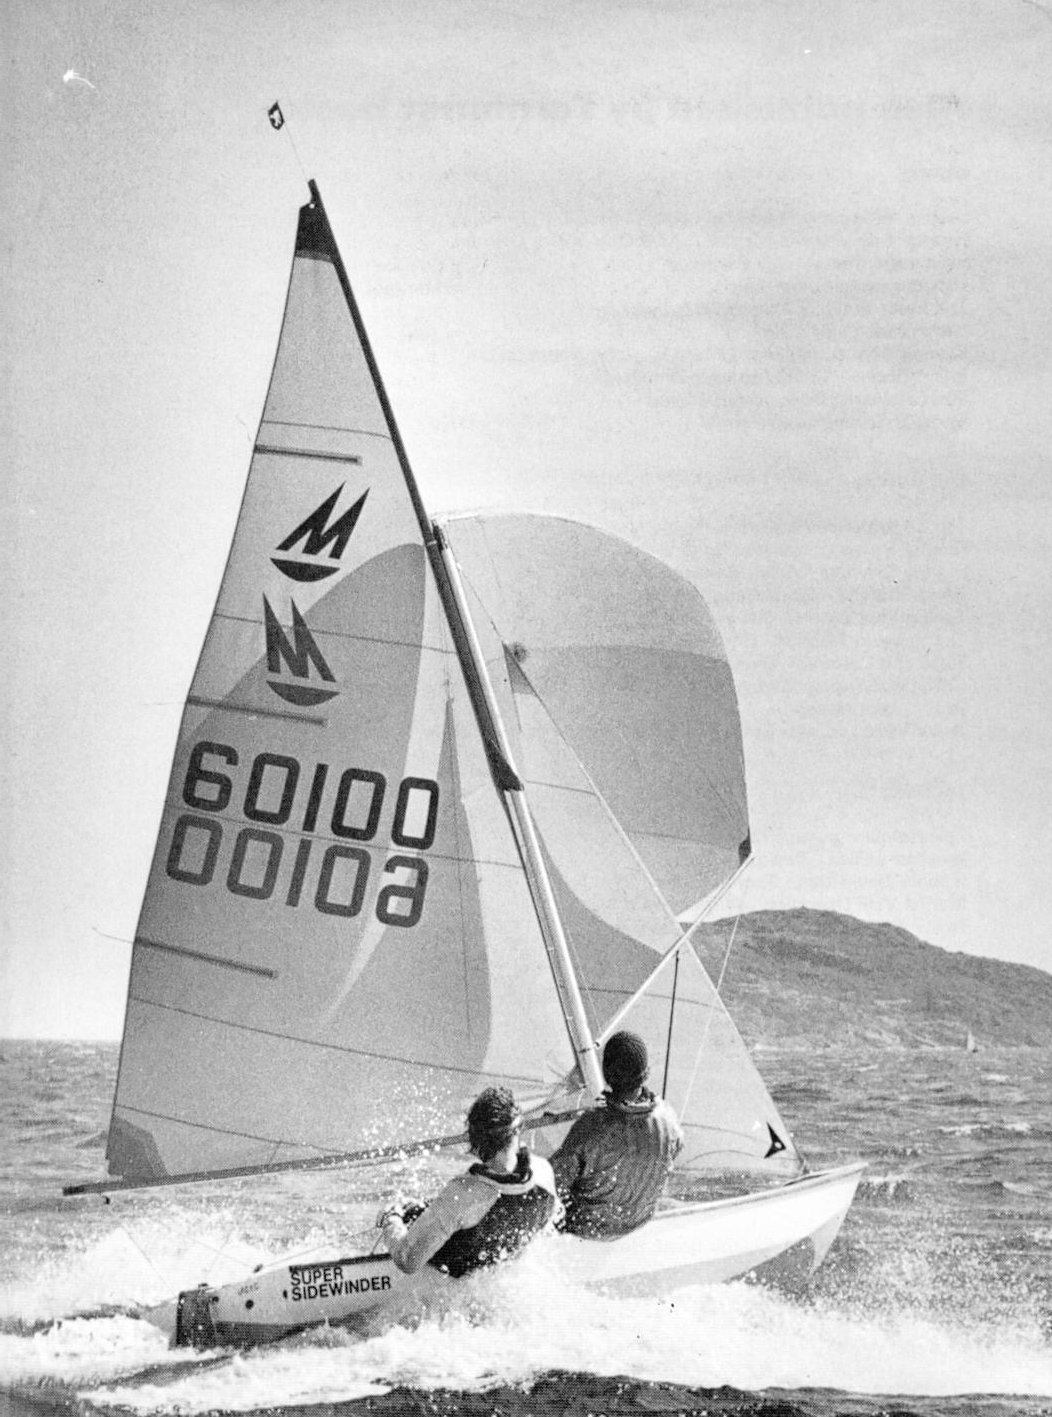 A Mirror dinghy racing on a reach with spinnaker set on a windy day, helm and crew both sitting out and the gaff pulled right up with no gap between the mast and the gaff